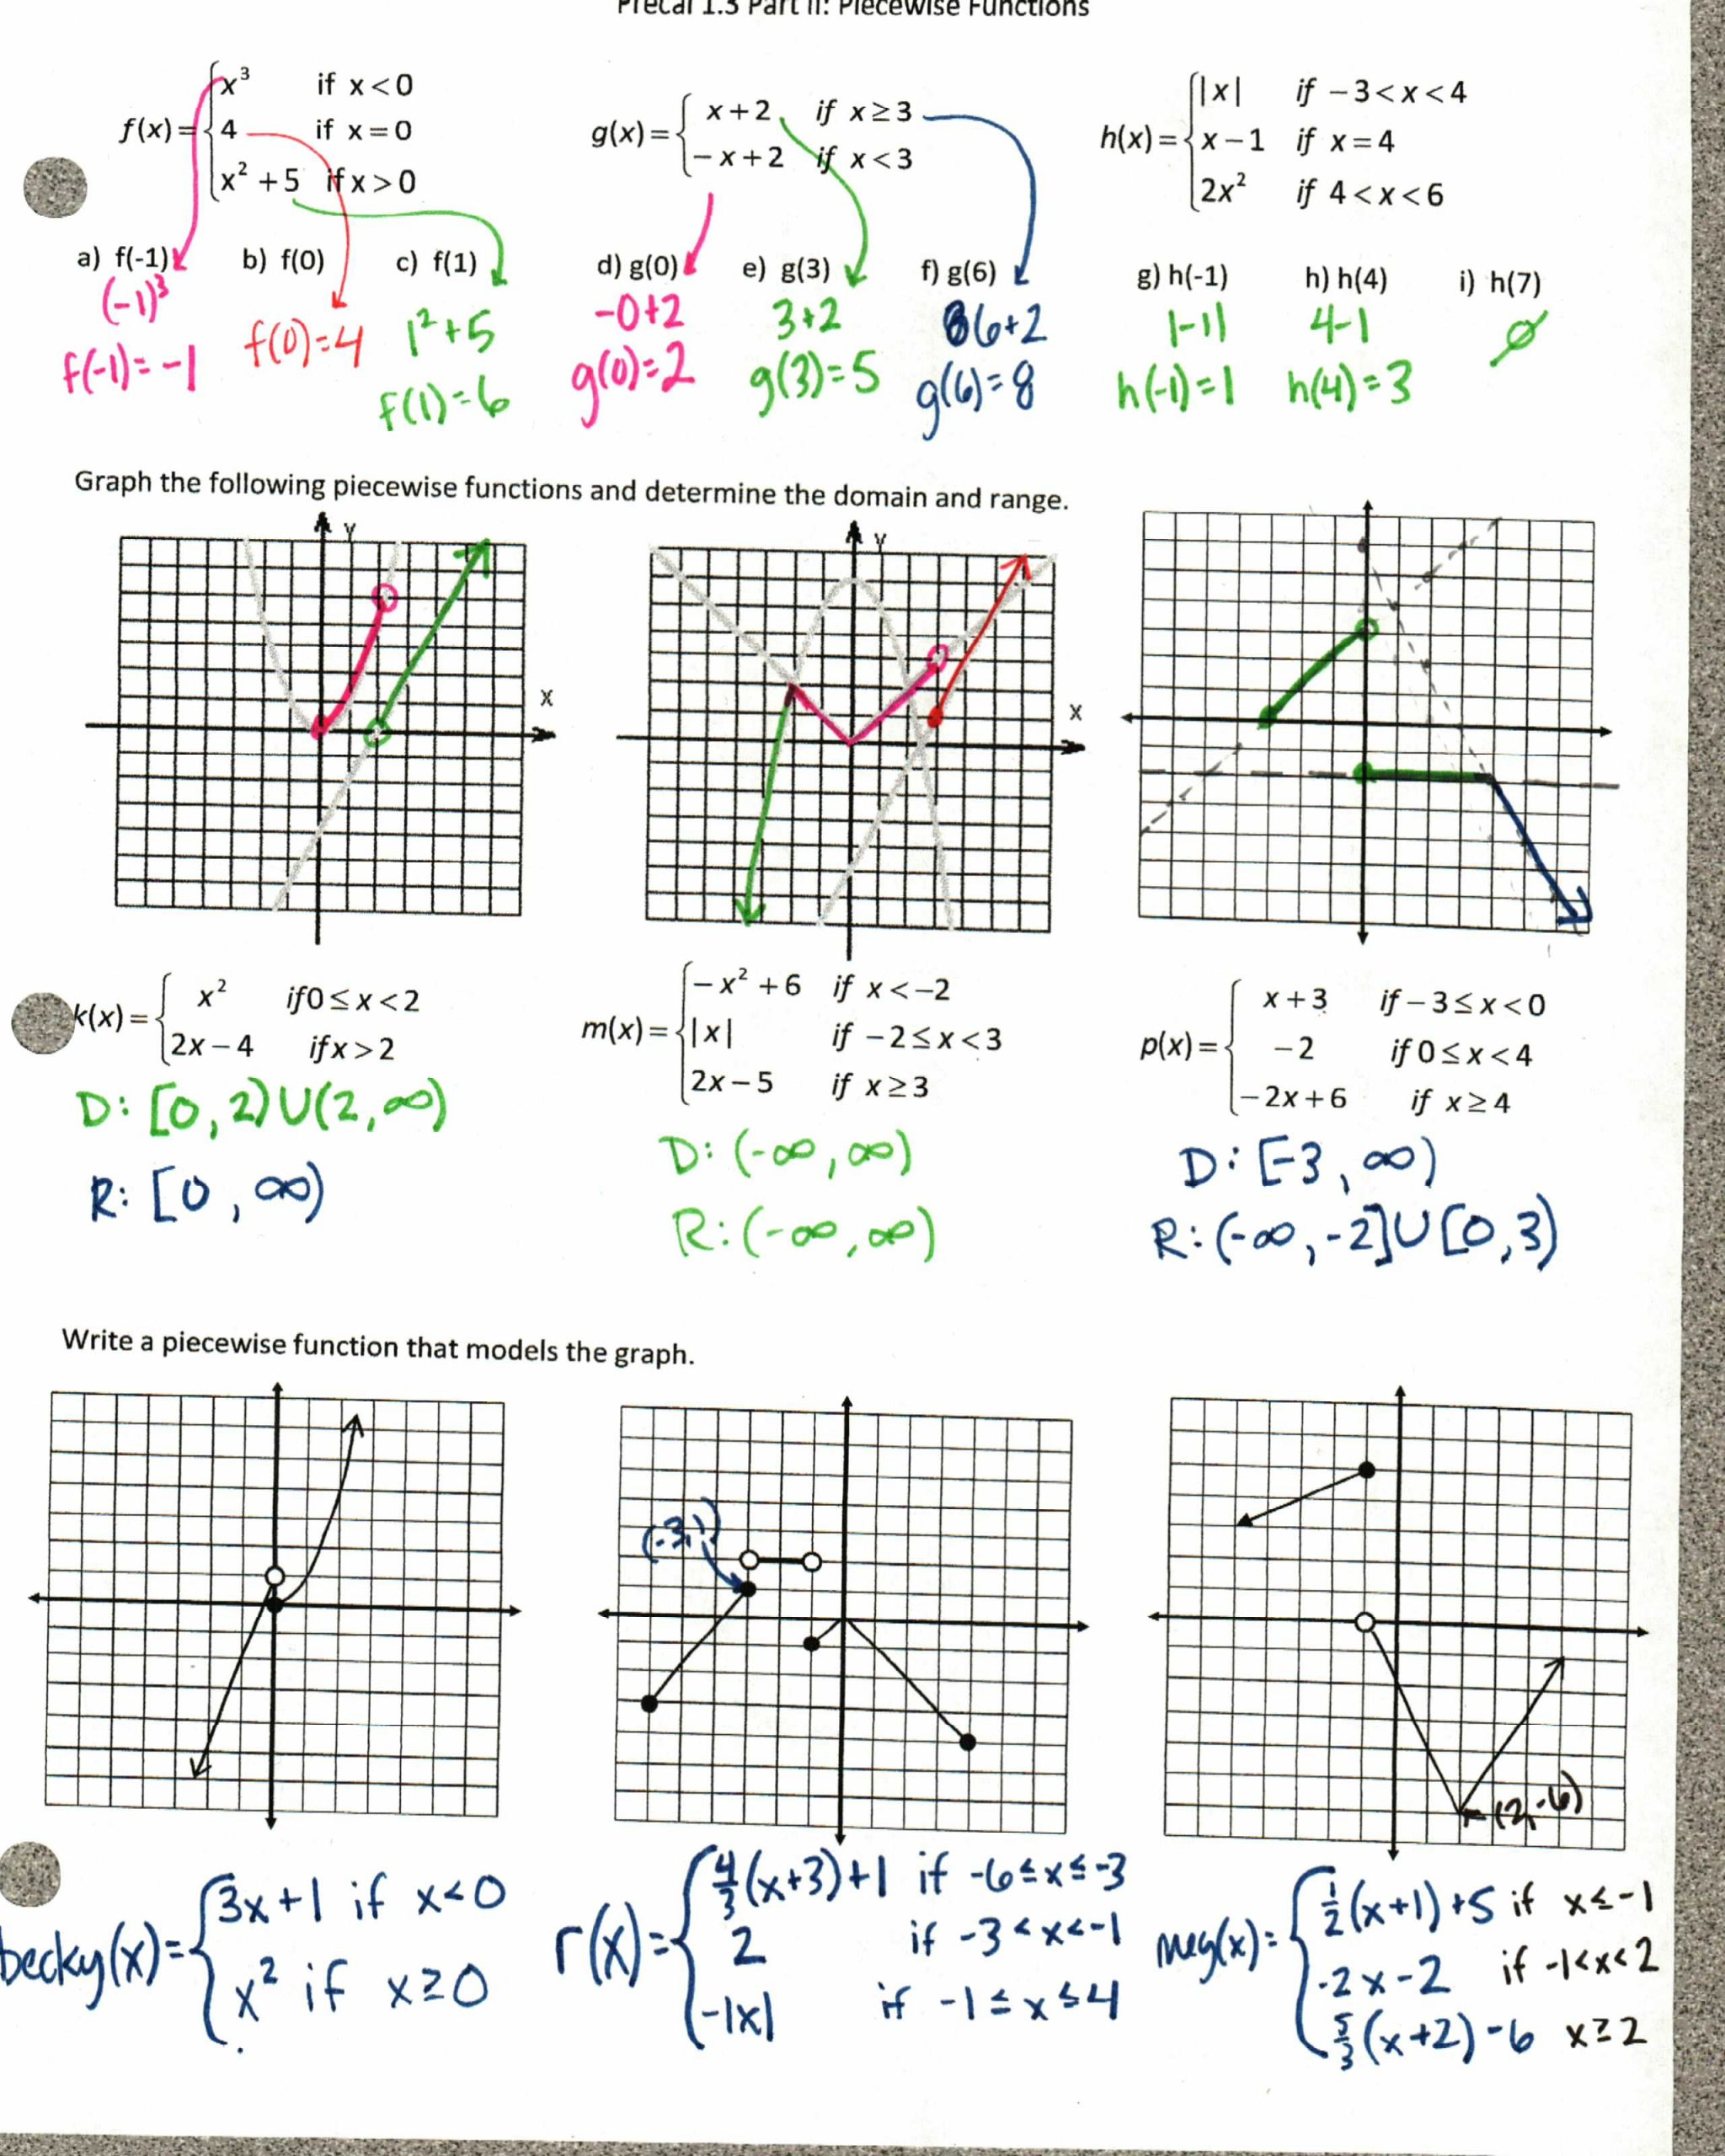 Graphing Inverse Functions Worksheet Precal – Page 3 – Insert Clever Math Pun Here